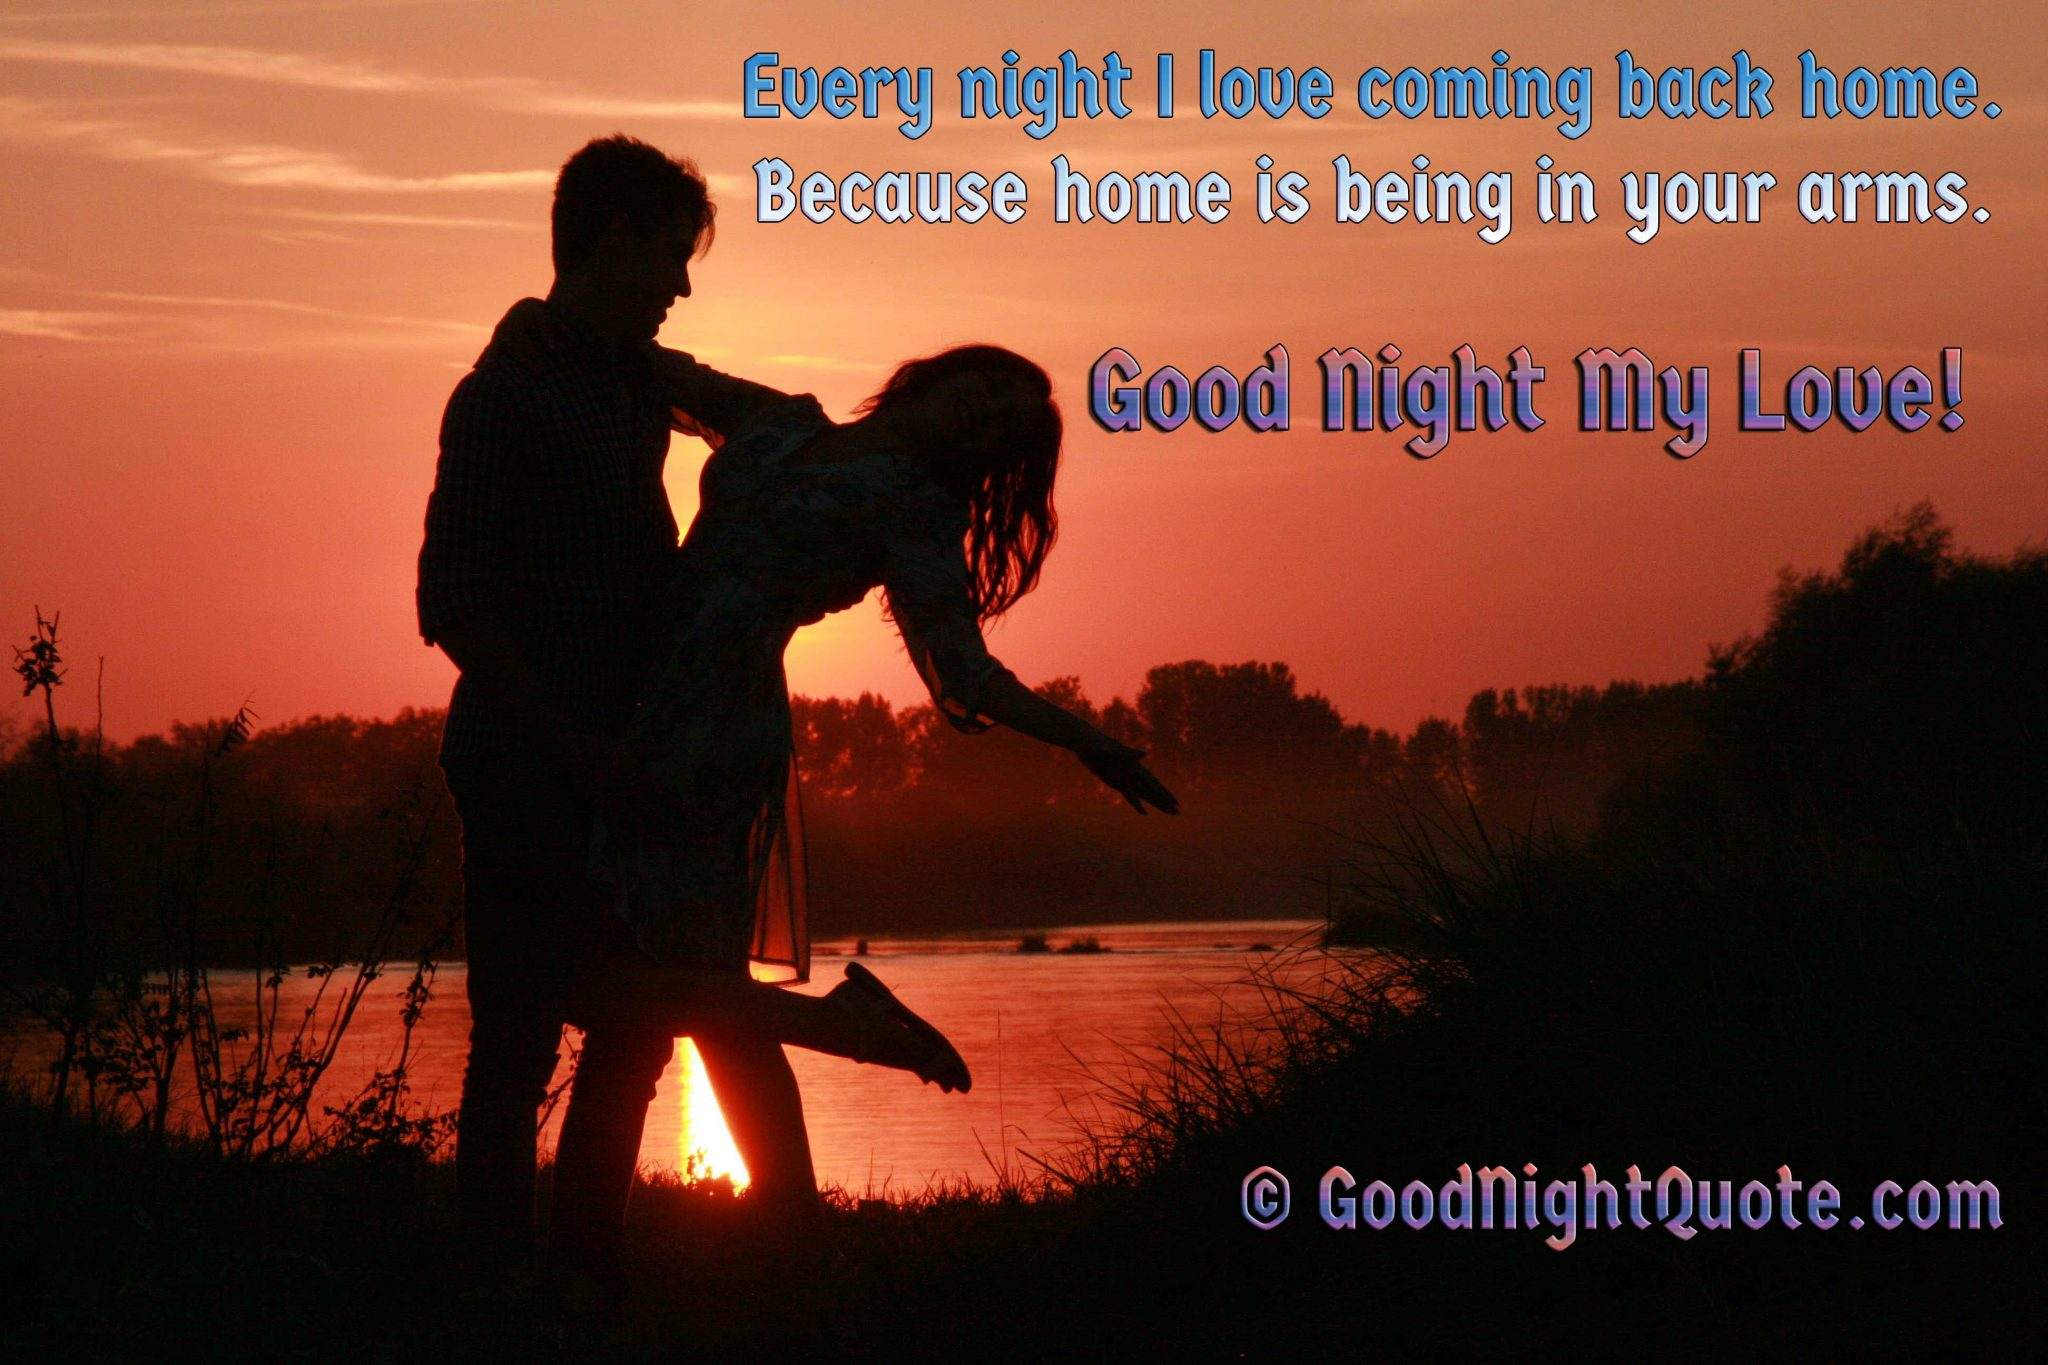 Good Night Darling Love Quote for lover - Home is being in your arms. Good night my love!